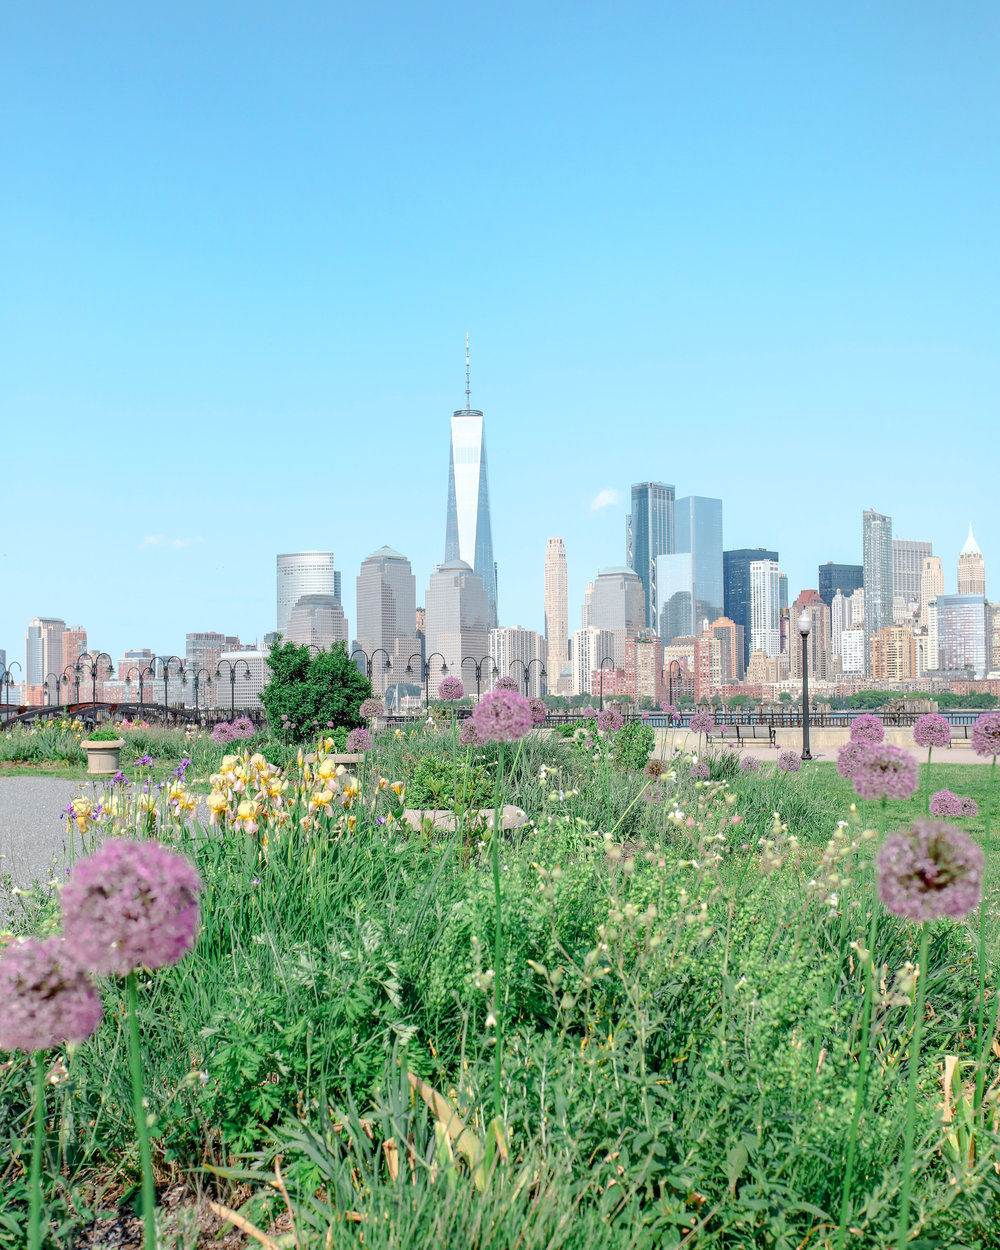 Flowers and the Freedom Tower